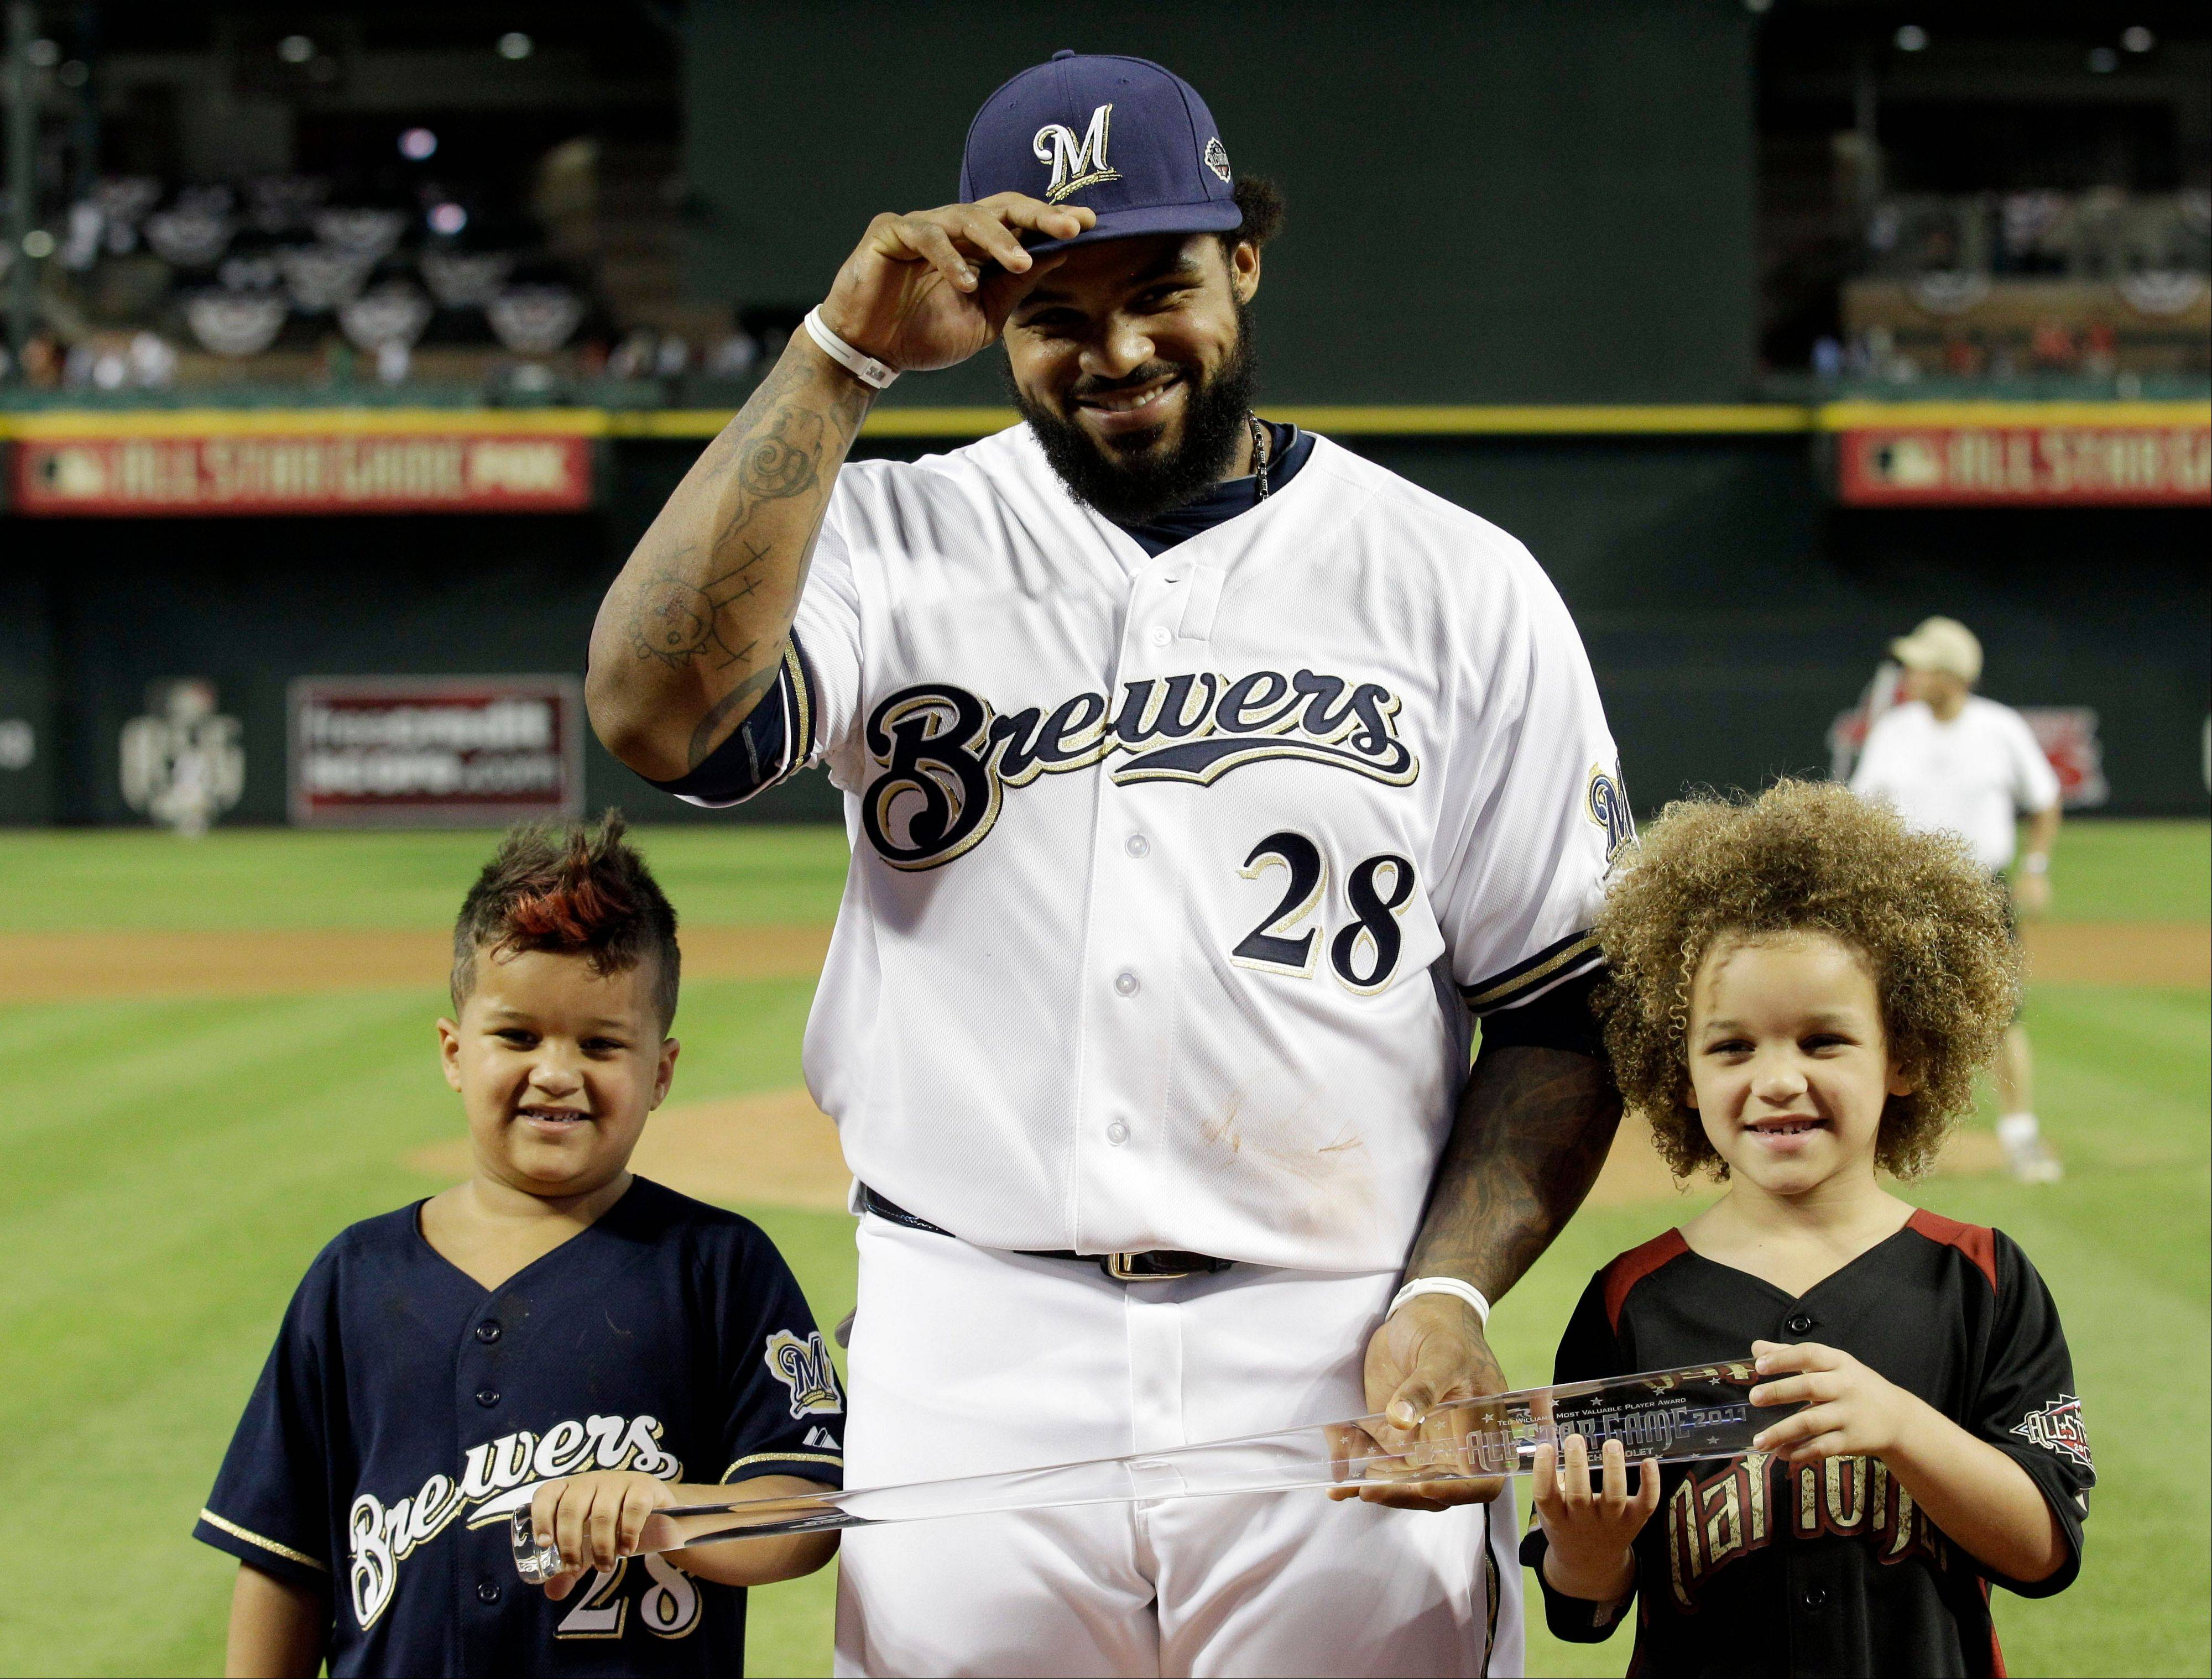 Flanked by his sons Haven, left, and Jaden, right, Prince Fielder of the Milwaukee Brewers holds his MVP award Tuesday after hitting a home run in the MLB All-Star game in Phoenix. The National League won 5-1.